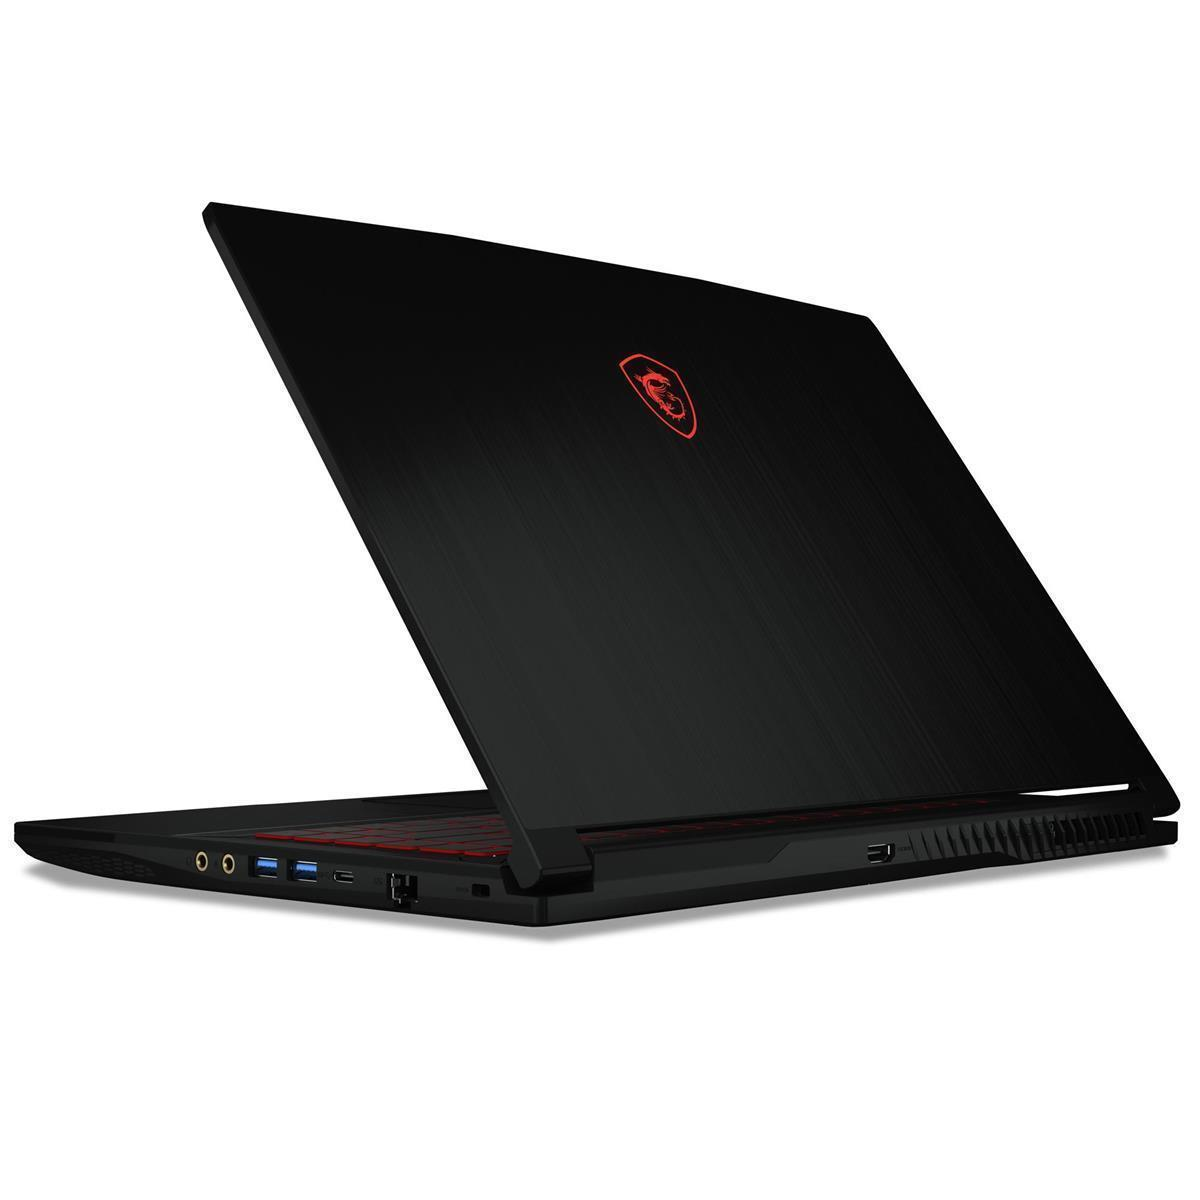 MSI GF63 15.6 Full HD Gaming Laptop i5 8300H 2.30GHz 8GB RAM 256GB SSD GTX 1050